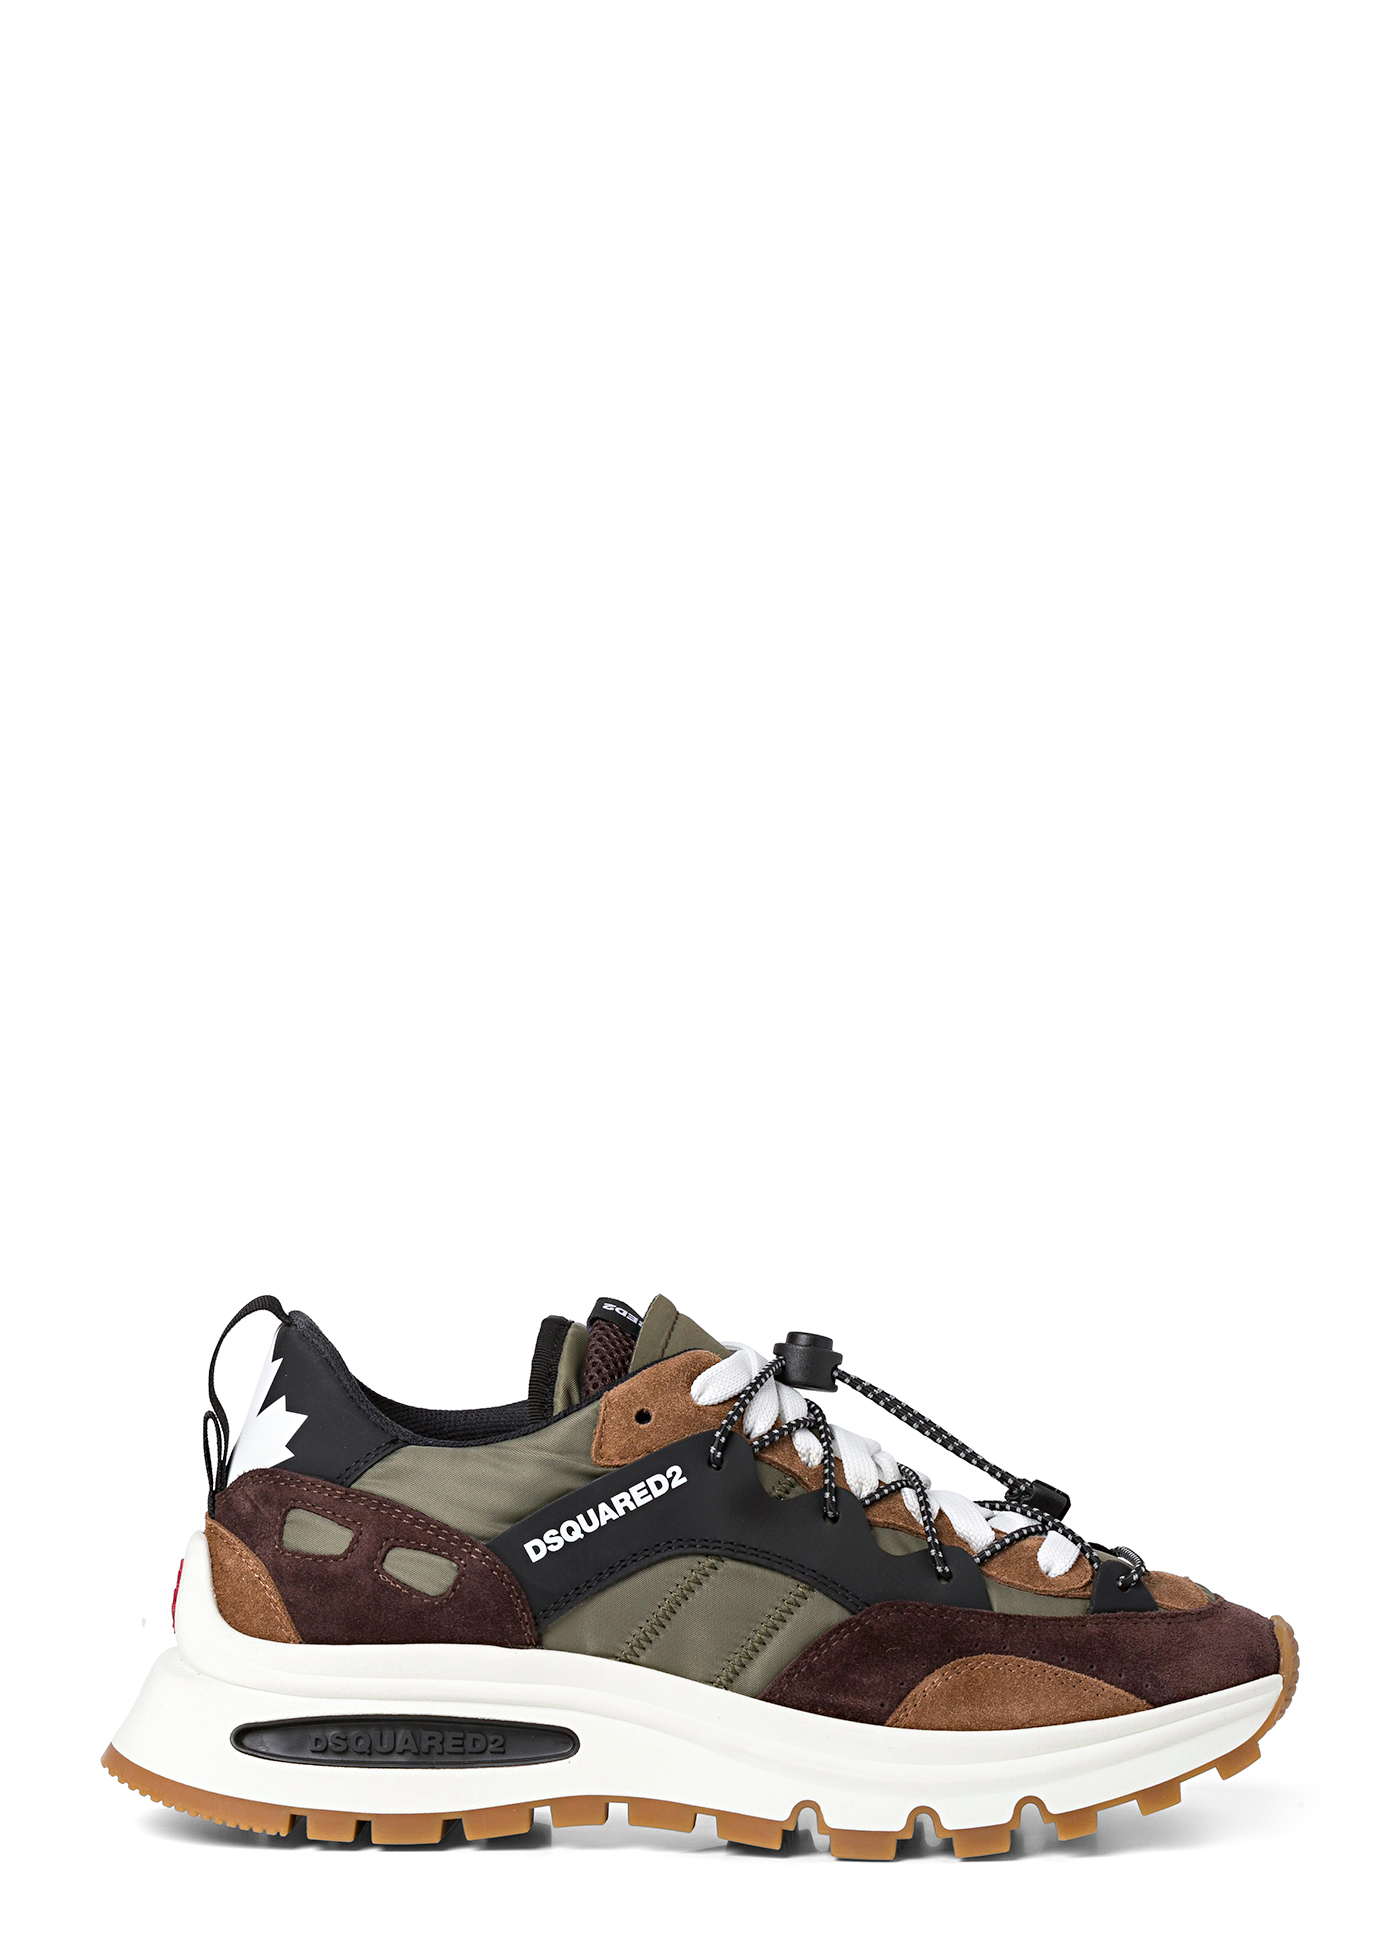 RUN DS2 3 TABS 1.303,40 SNEAKERS image number 0